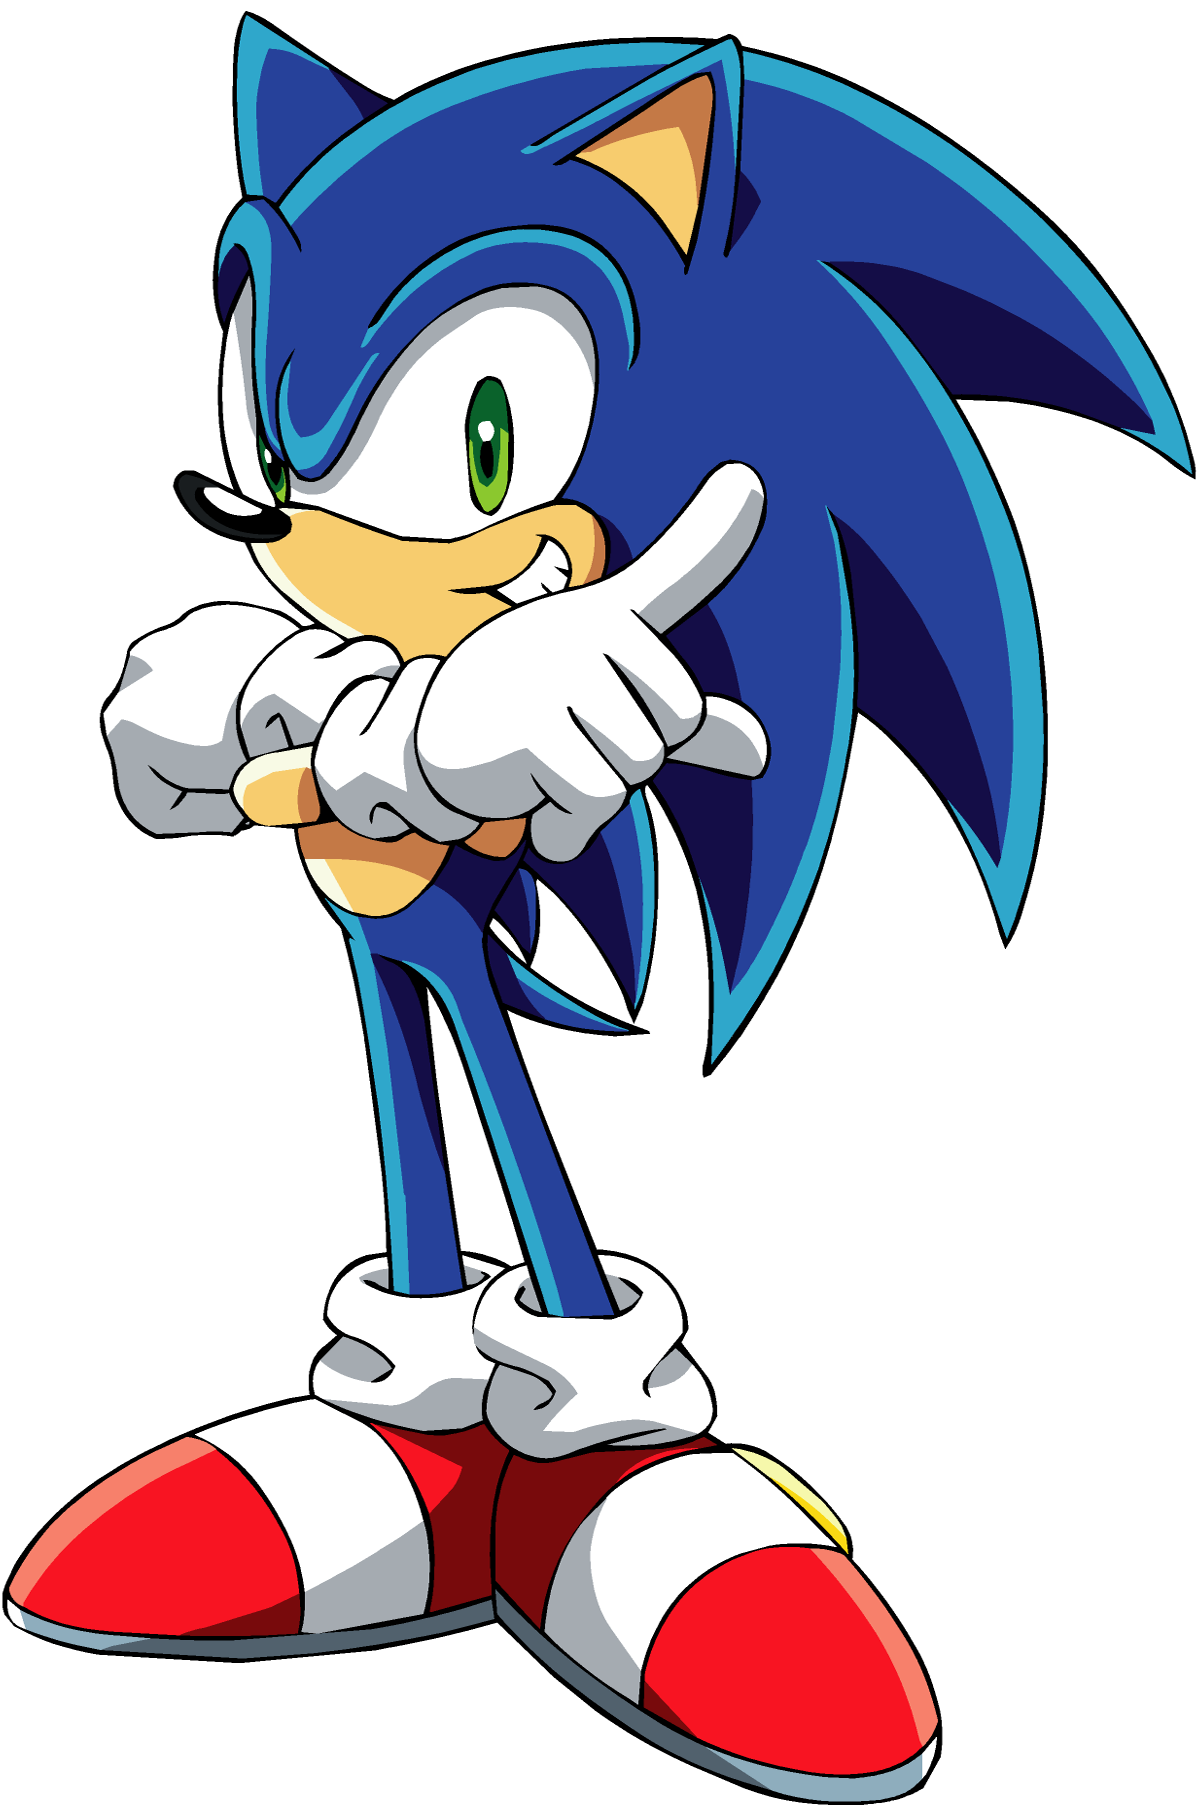 Sad sonic png. The hedgehog x news